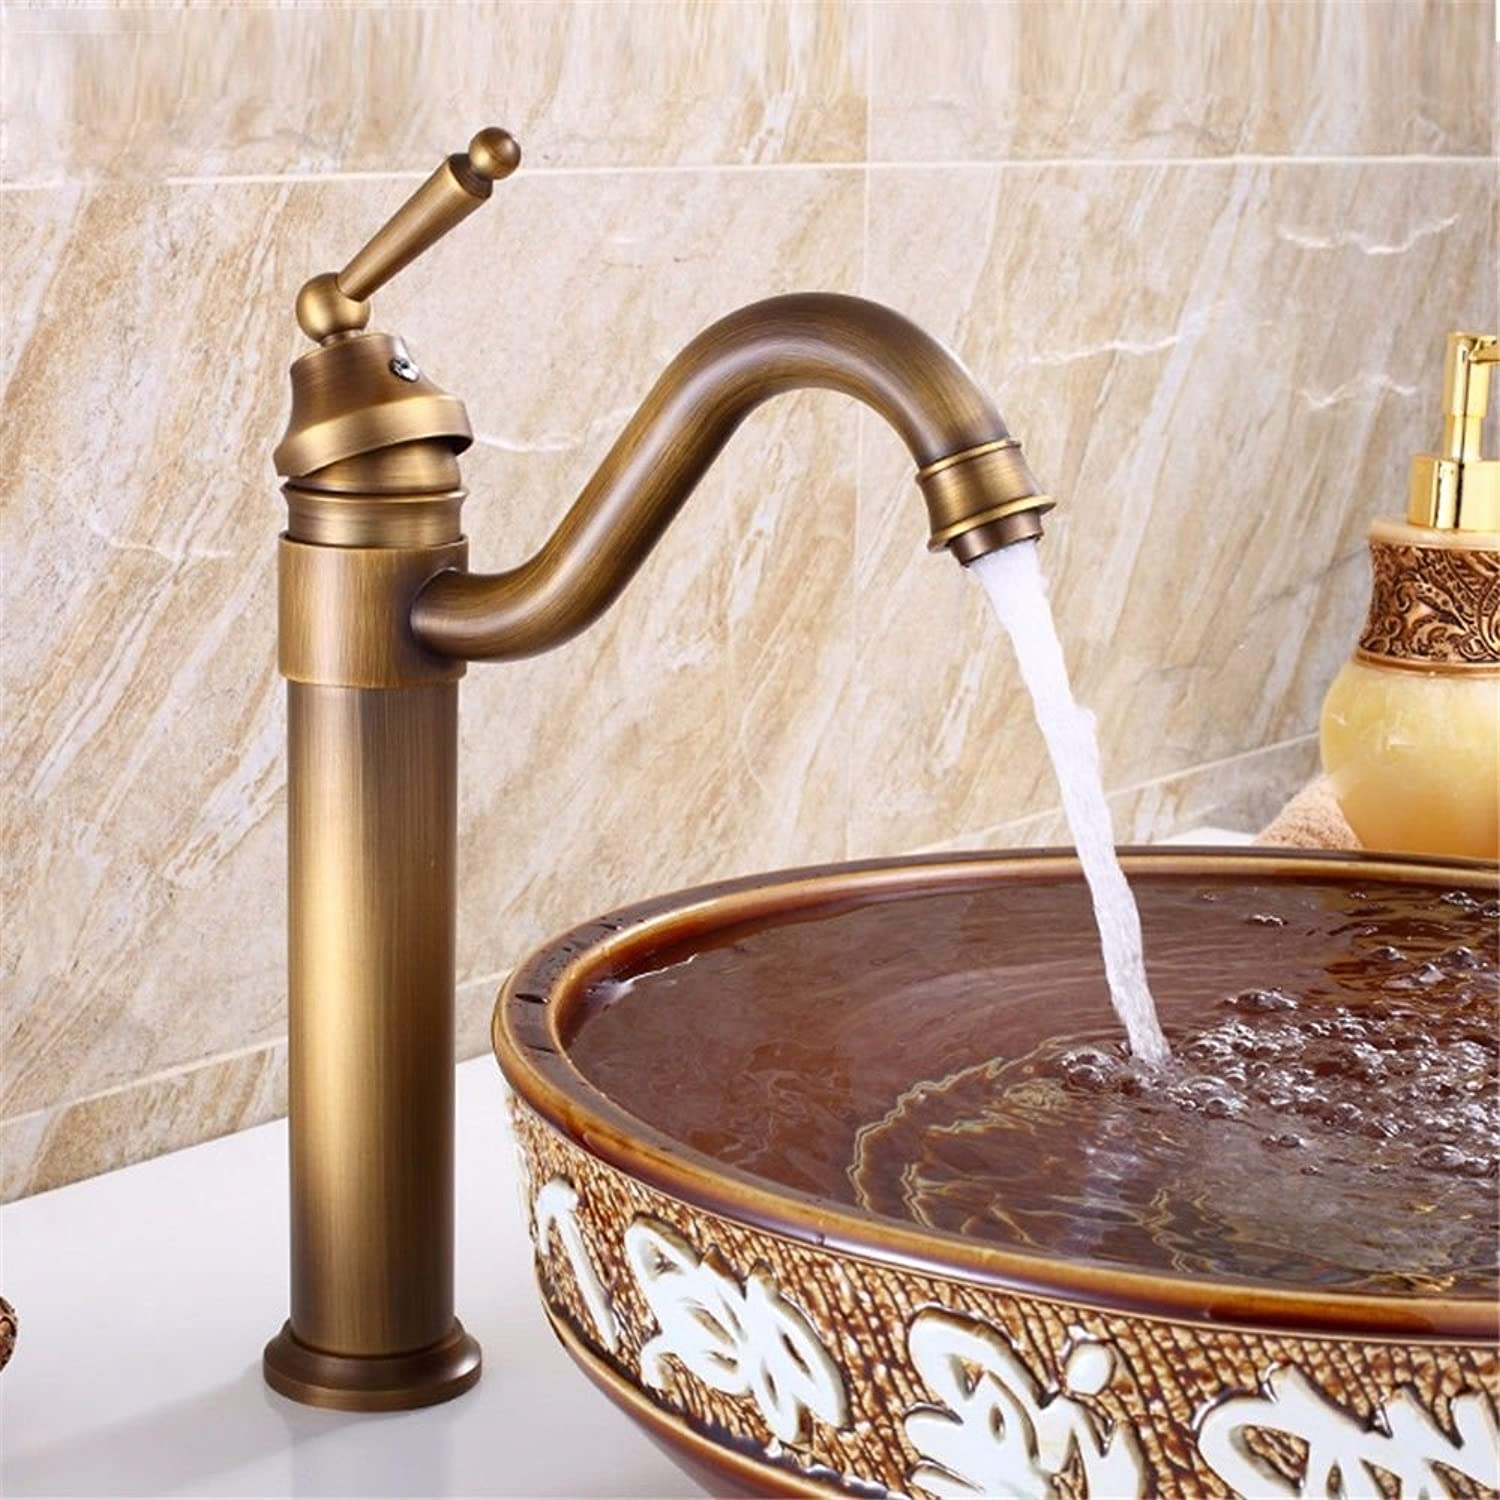 Hlluya Professional Sink Mixer Tap Kitchen Faucet The copper basin faucet surface 盆 antique bathroom kitchen sink hot and cold redary, antique